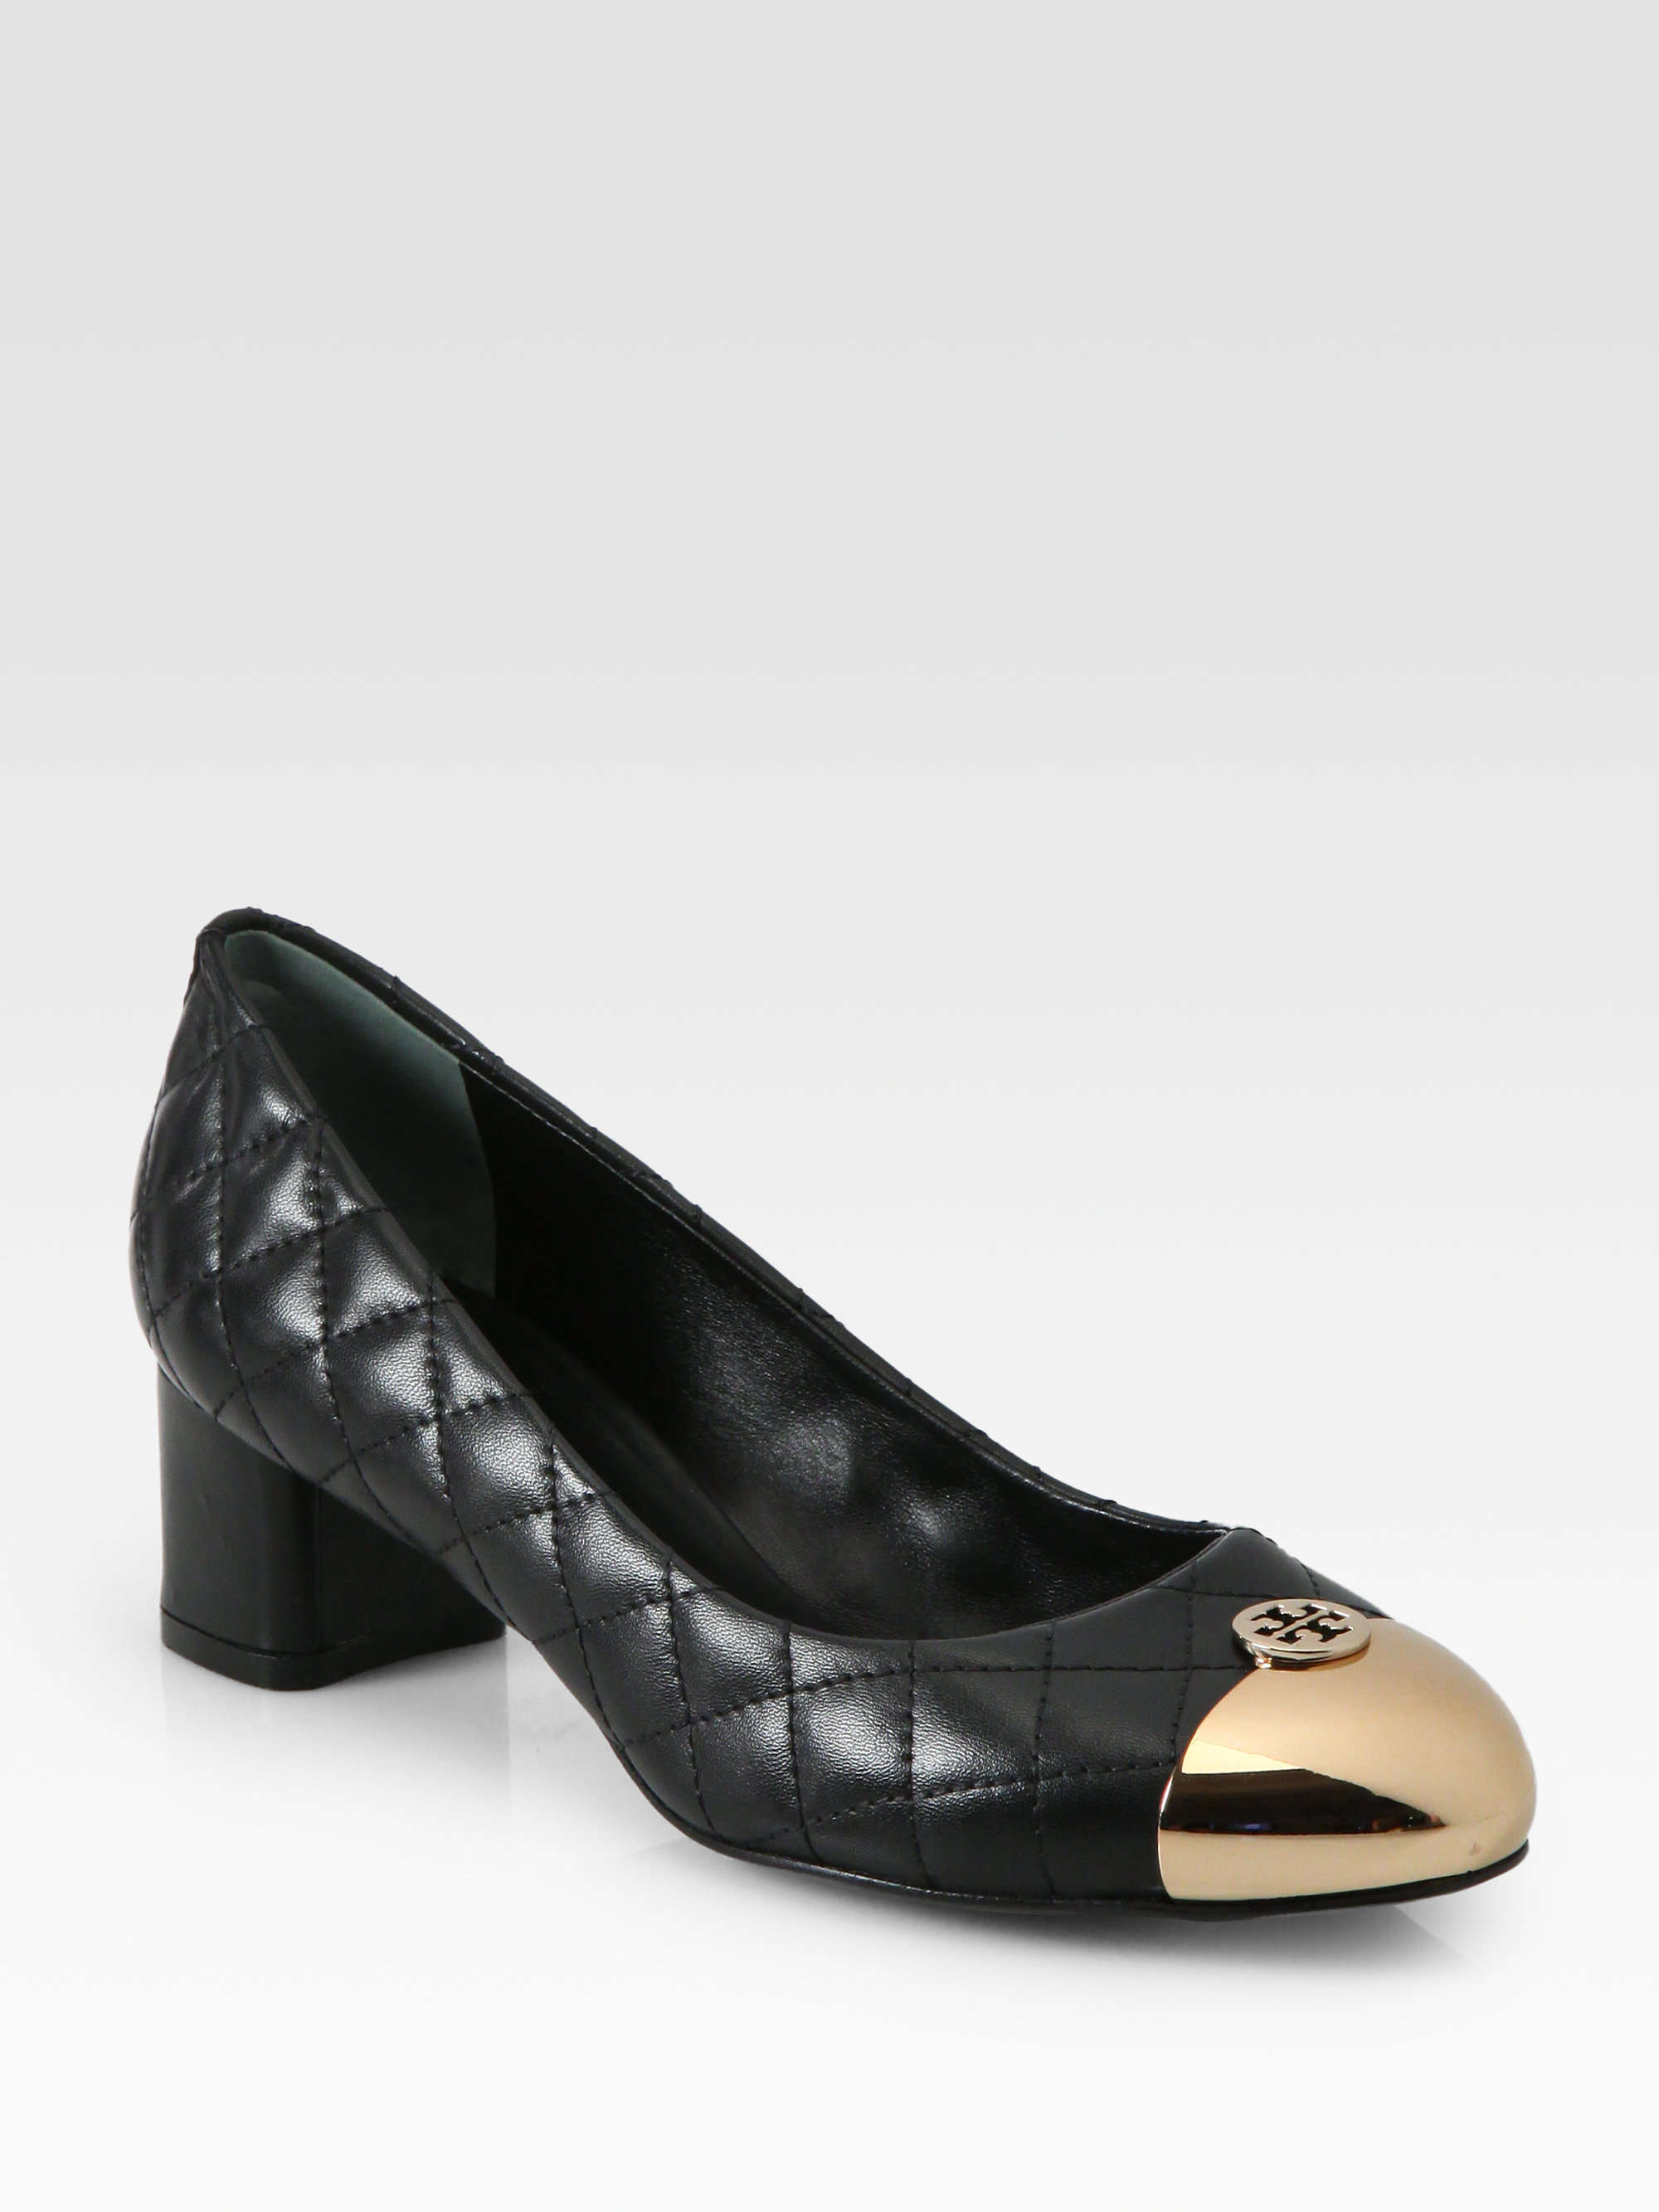 d4285aa47761 Lyst - Tory Burch Kaitlin Quilted Leather Pumps in Black